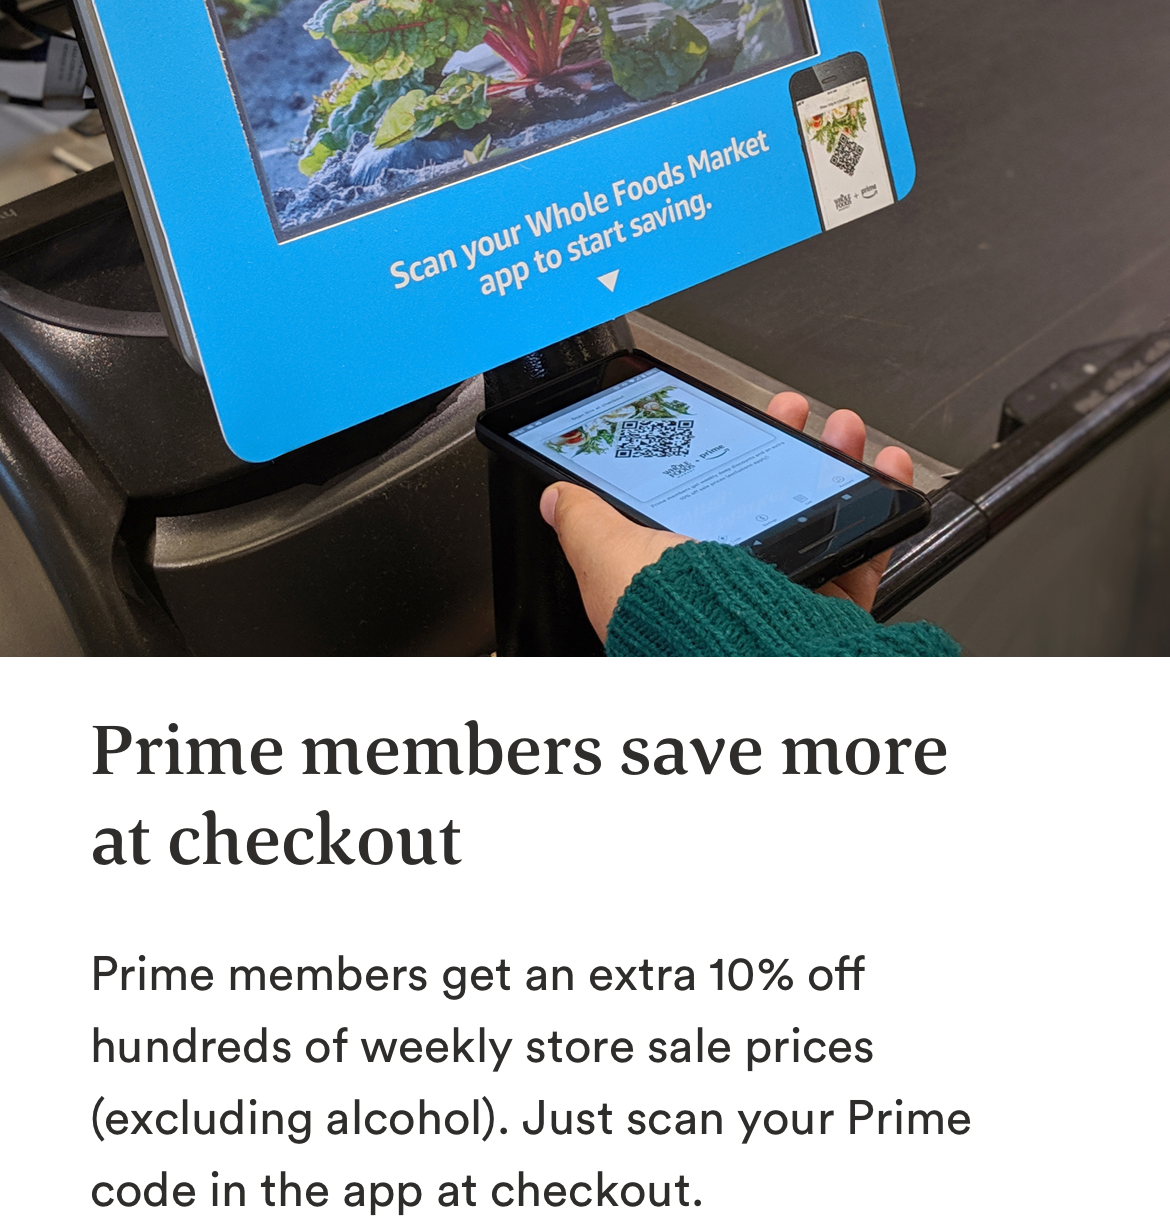 Image showing customer scaning barcode at checkout. Prime members save more at checkout. Prime members get an extra 10% off hundreds of weekly store sale prices (excluding alcohol). Just scan your Prime code in the app at checkout.